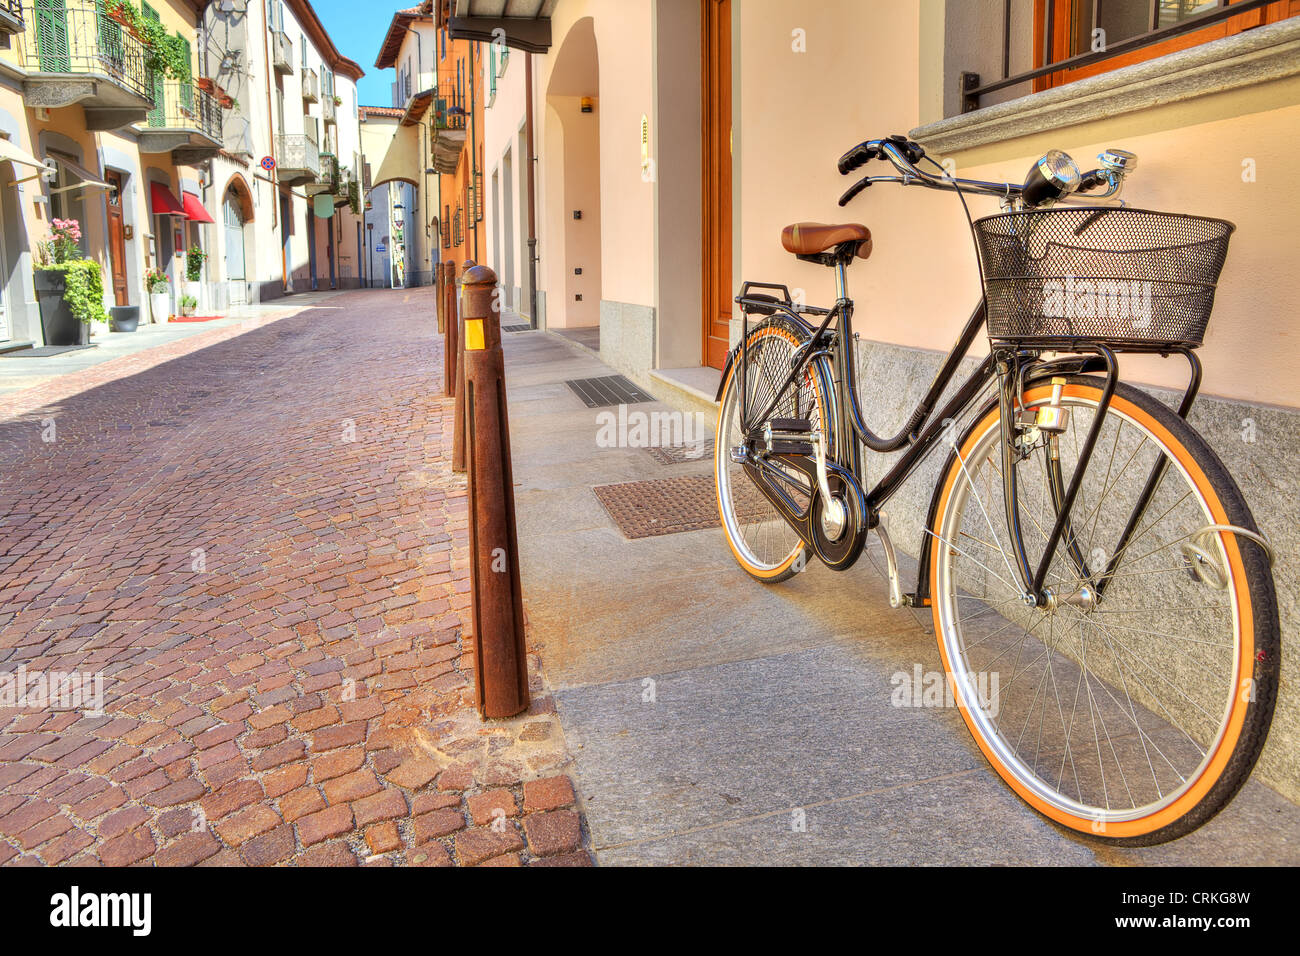 City bicycle on the cobbled street of Alba in Piedmont, Northern Italy. - Stock Image